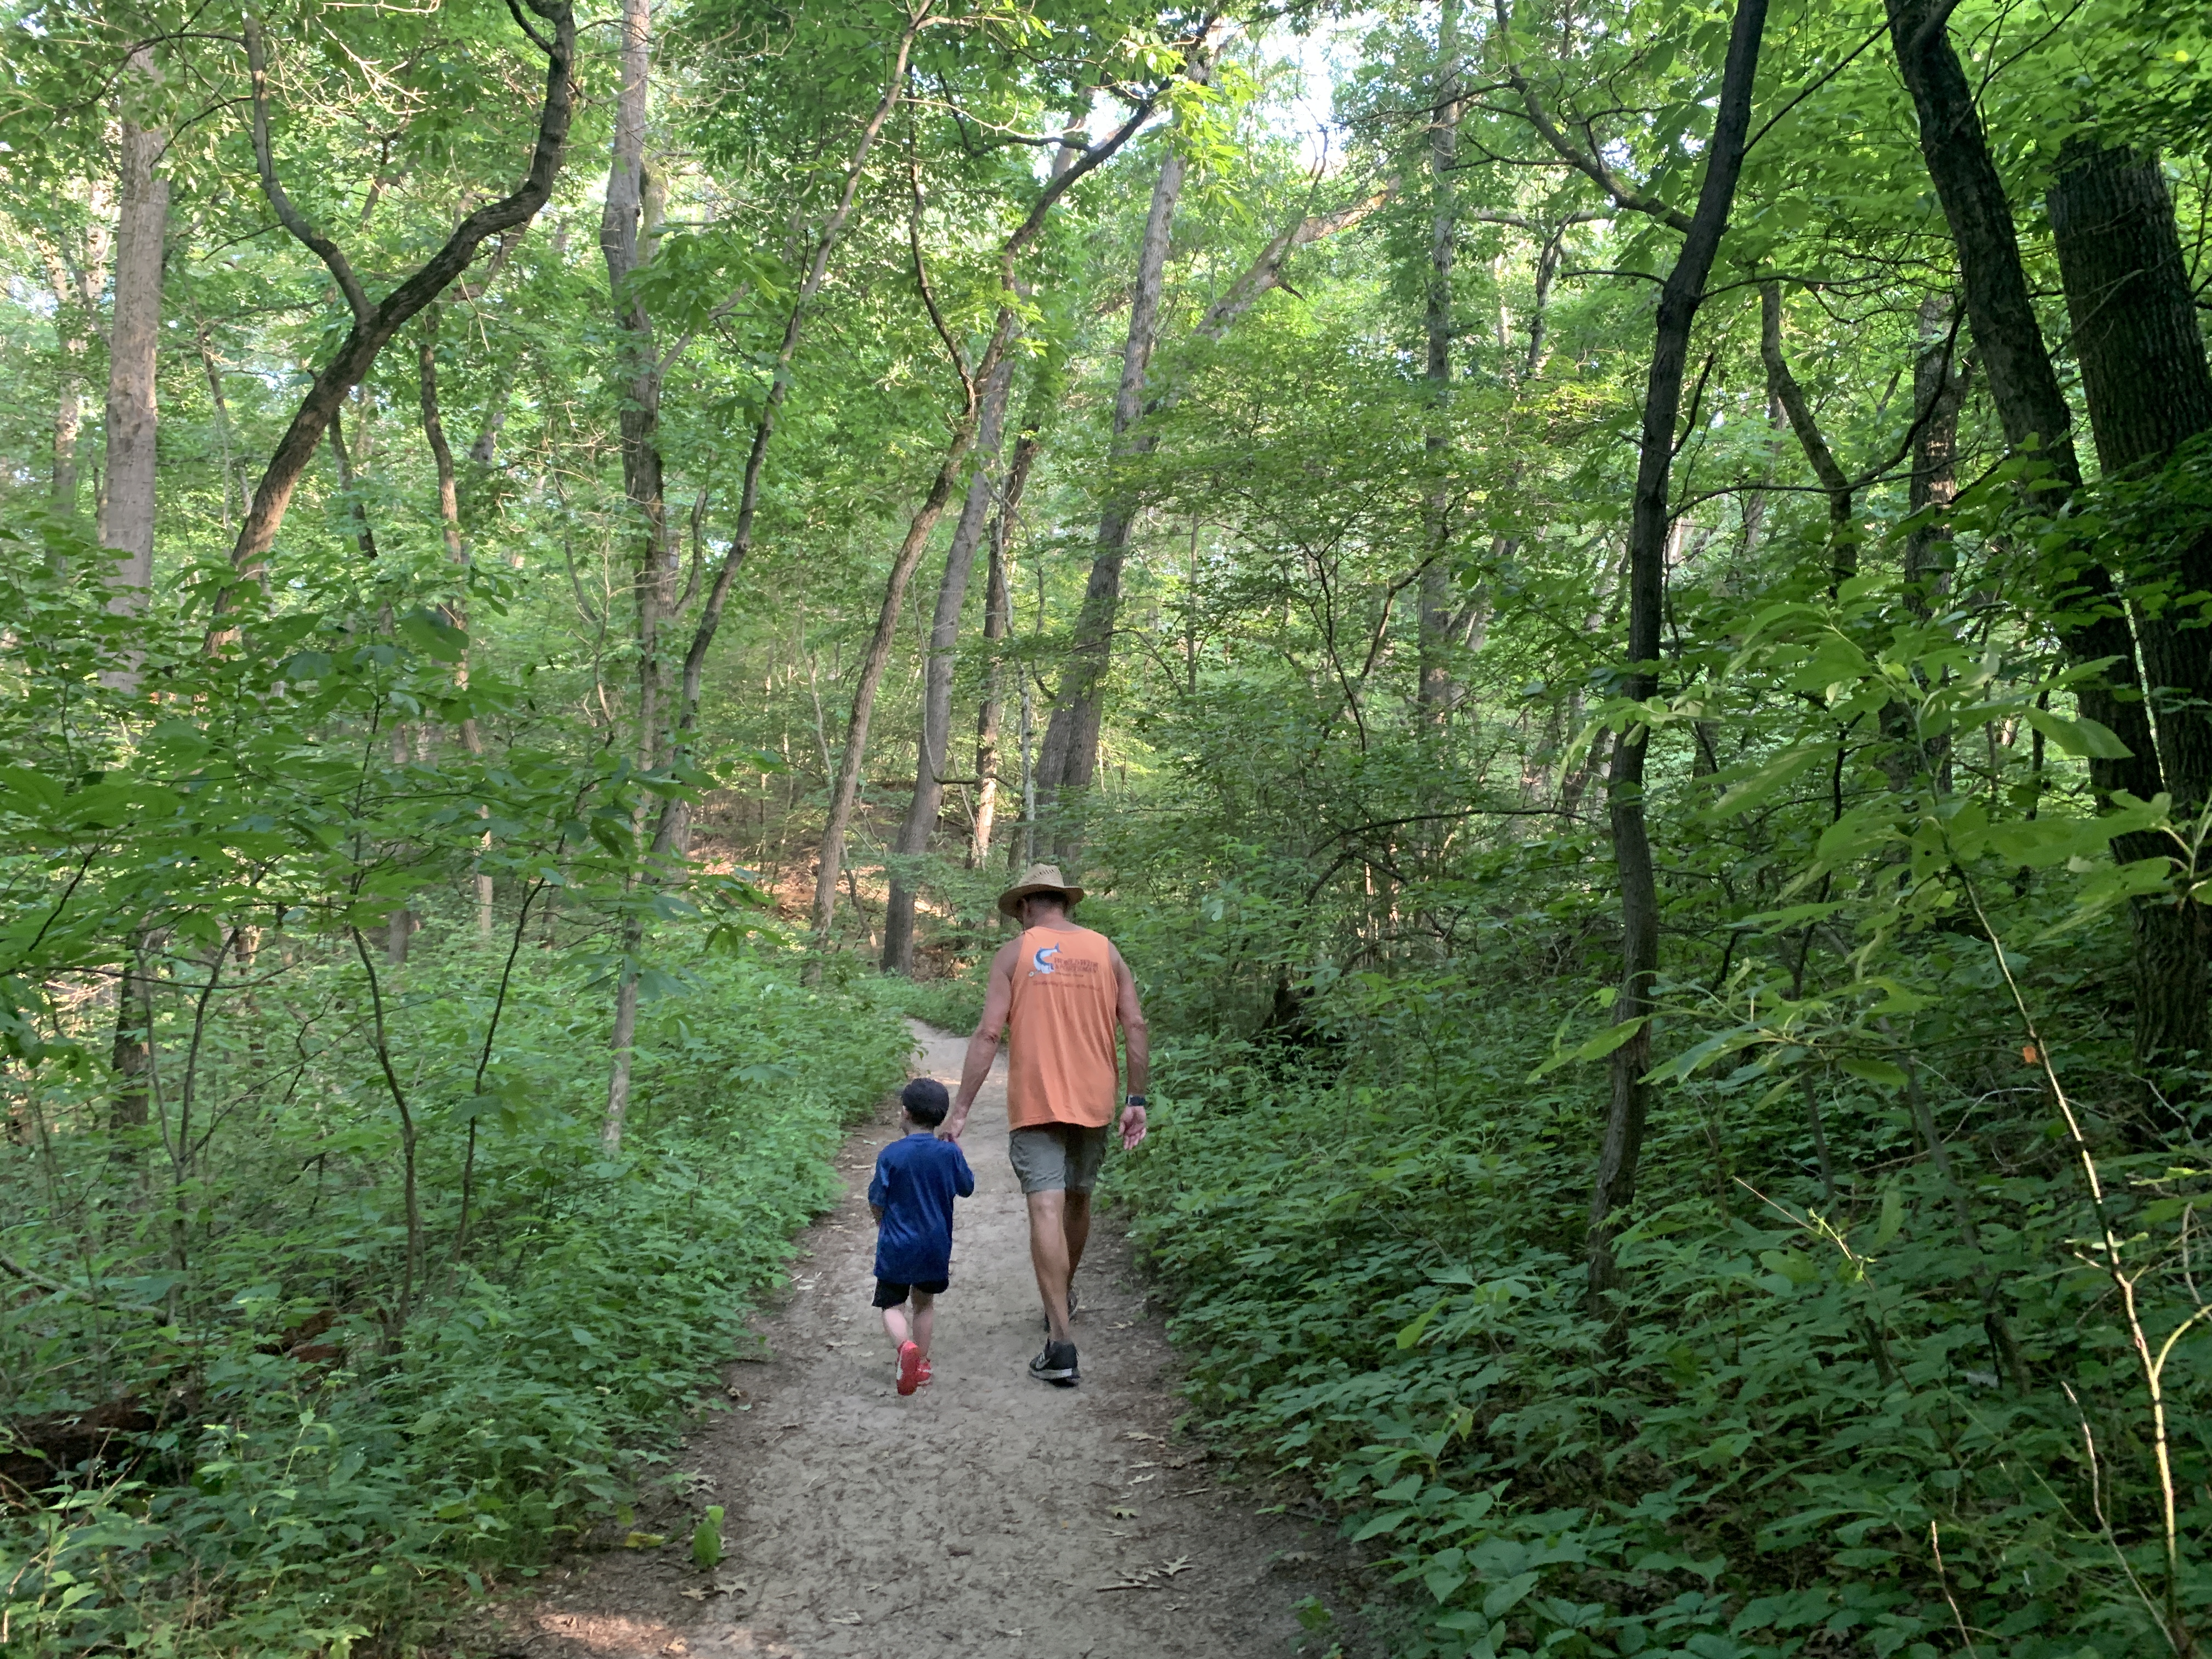 Hiking through the forest at Indiana Dunes National Park